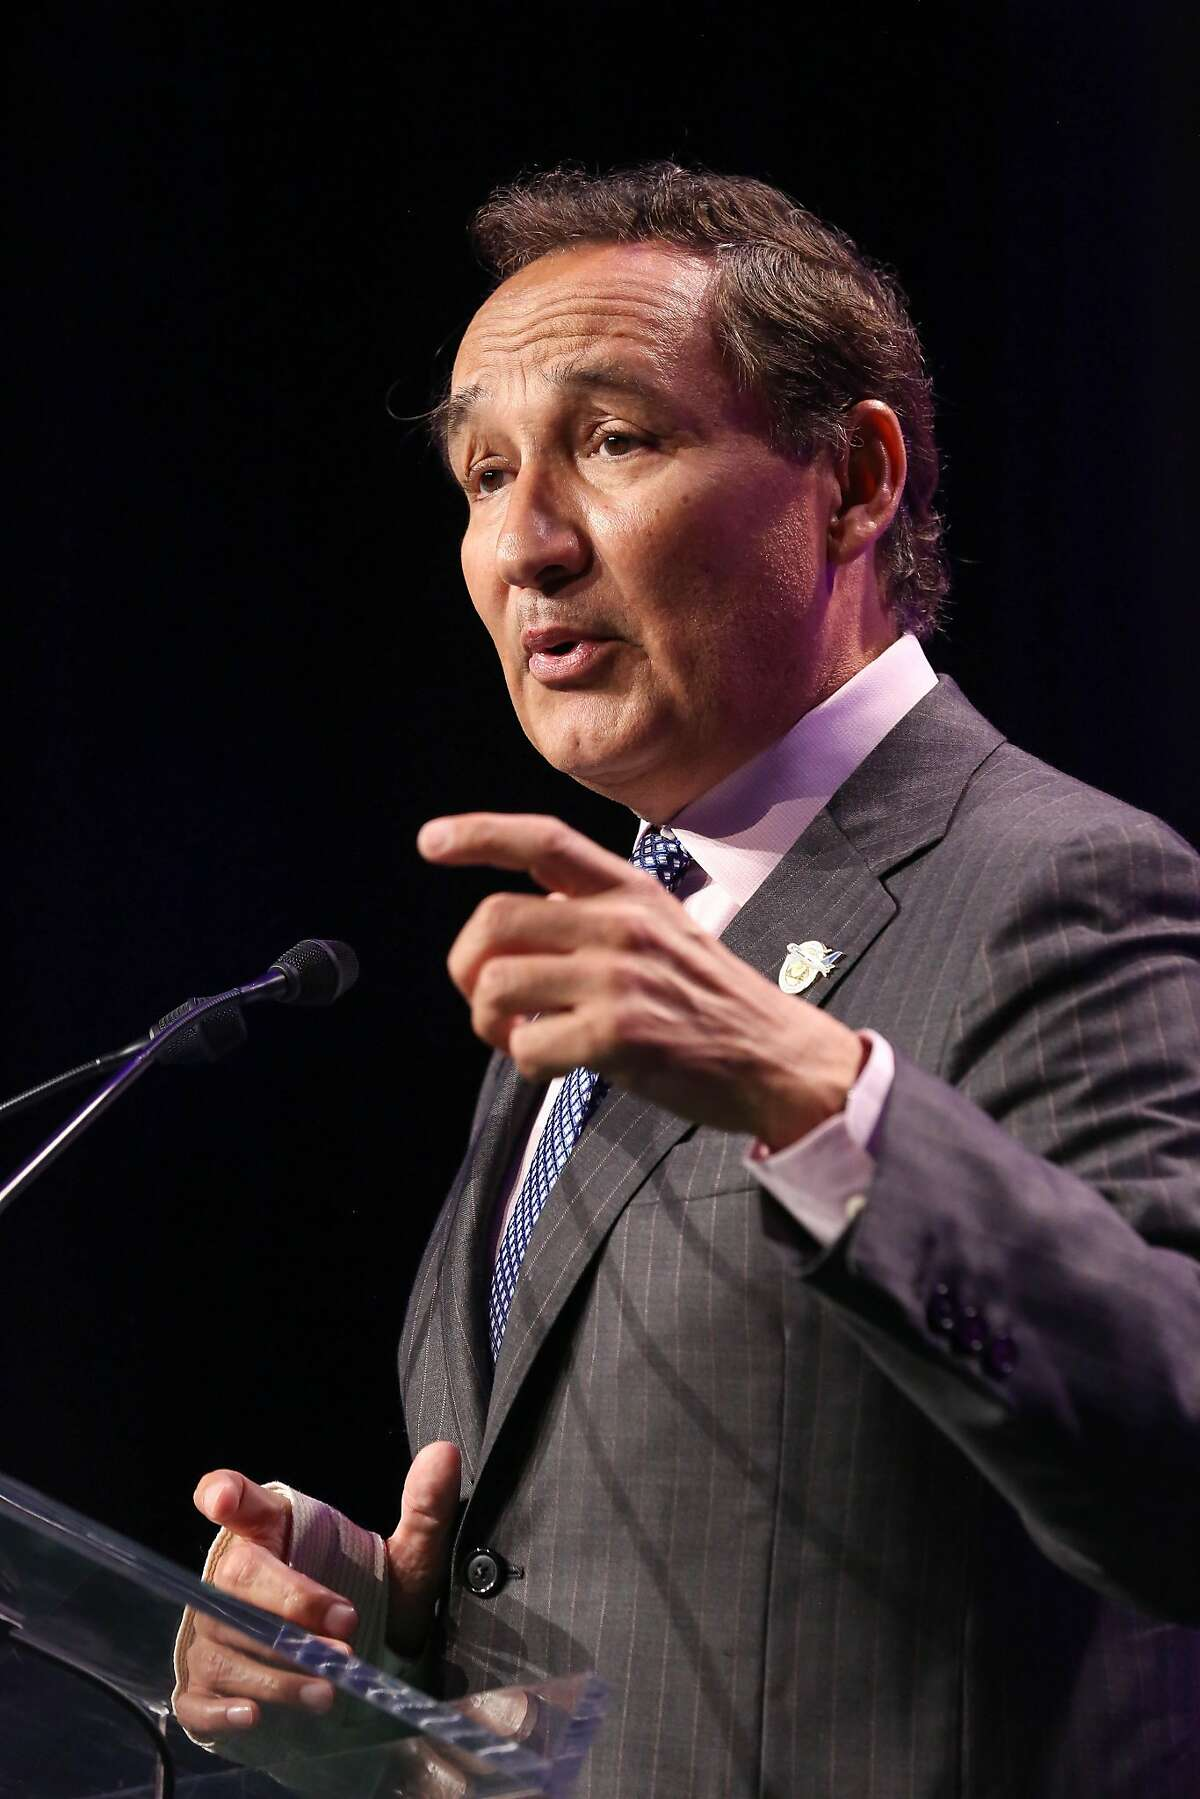 CEO of United Airlines, Oscar Munoz, speaks at the SF Travel Association annual luncheon on Thursday, June 1, 2017 in San Francisco, Calif.